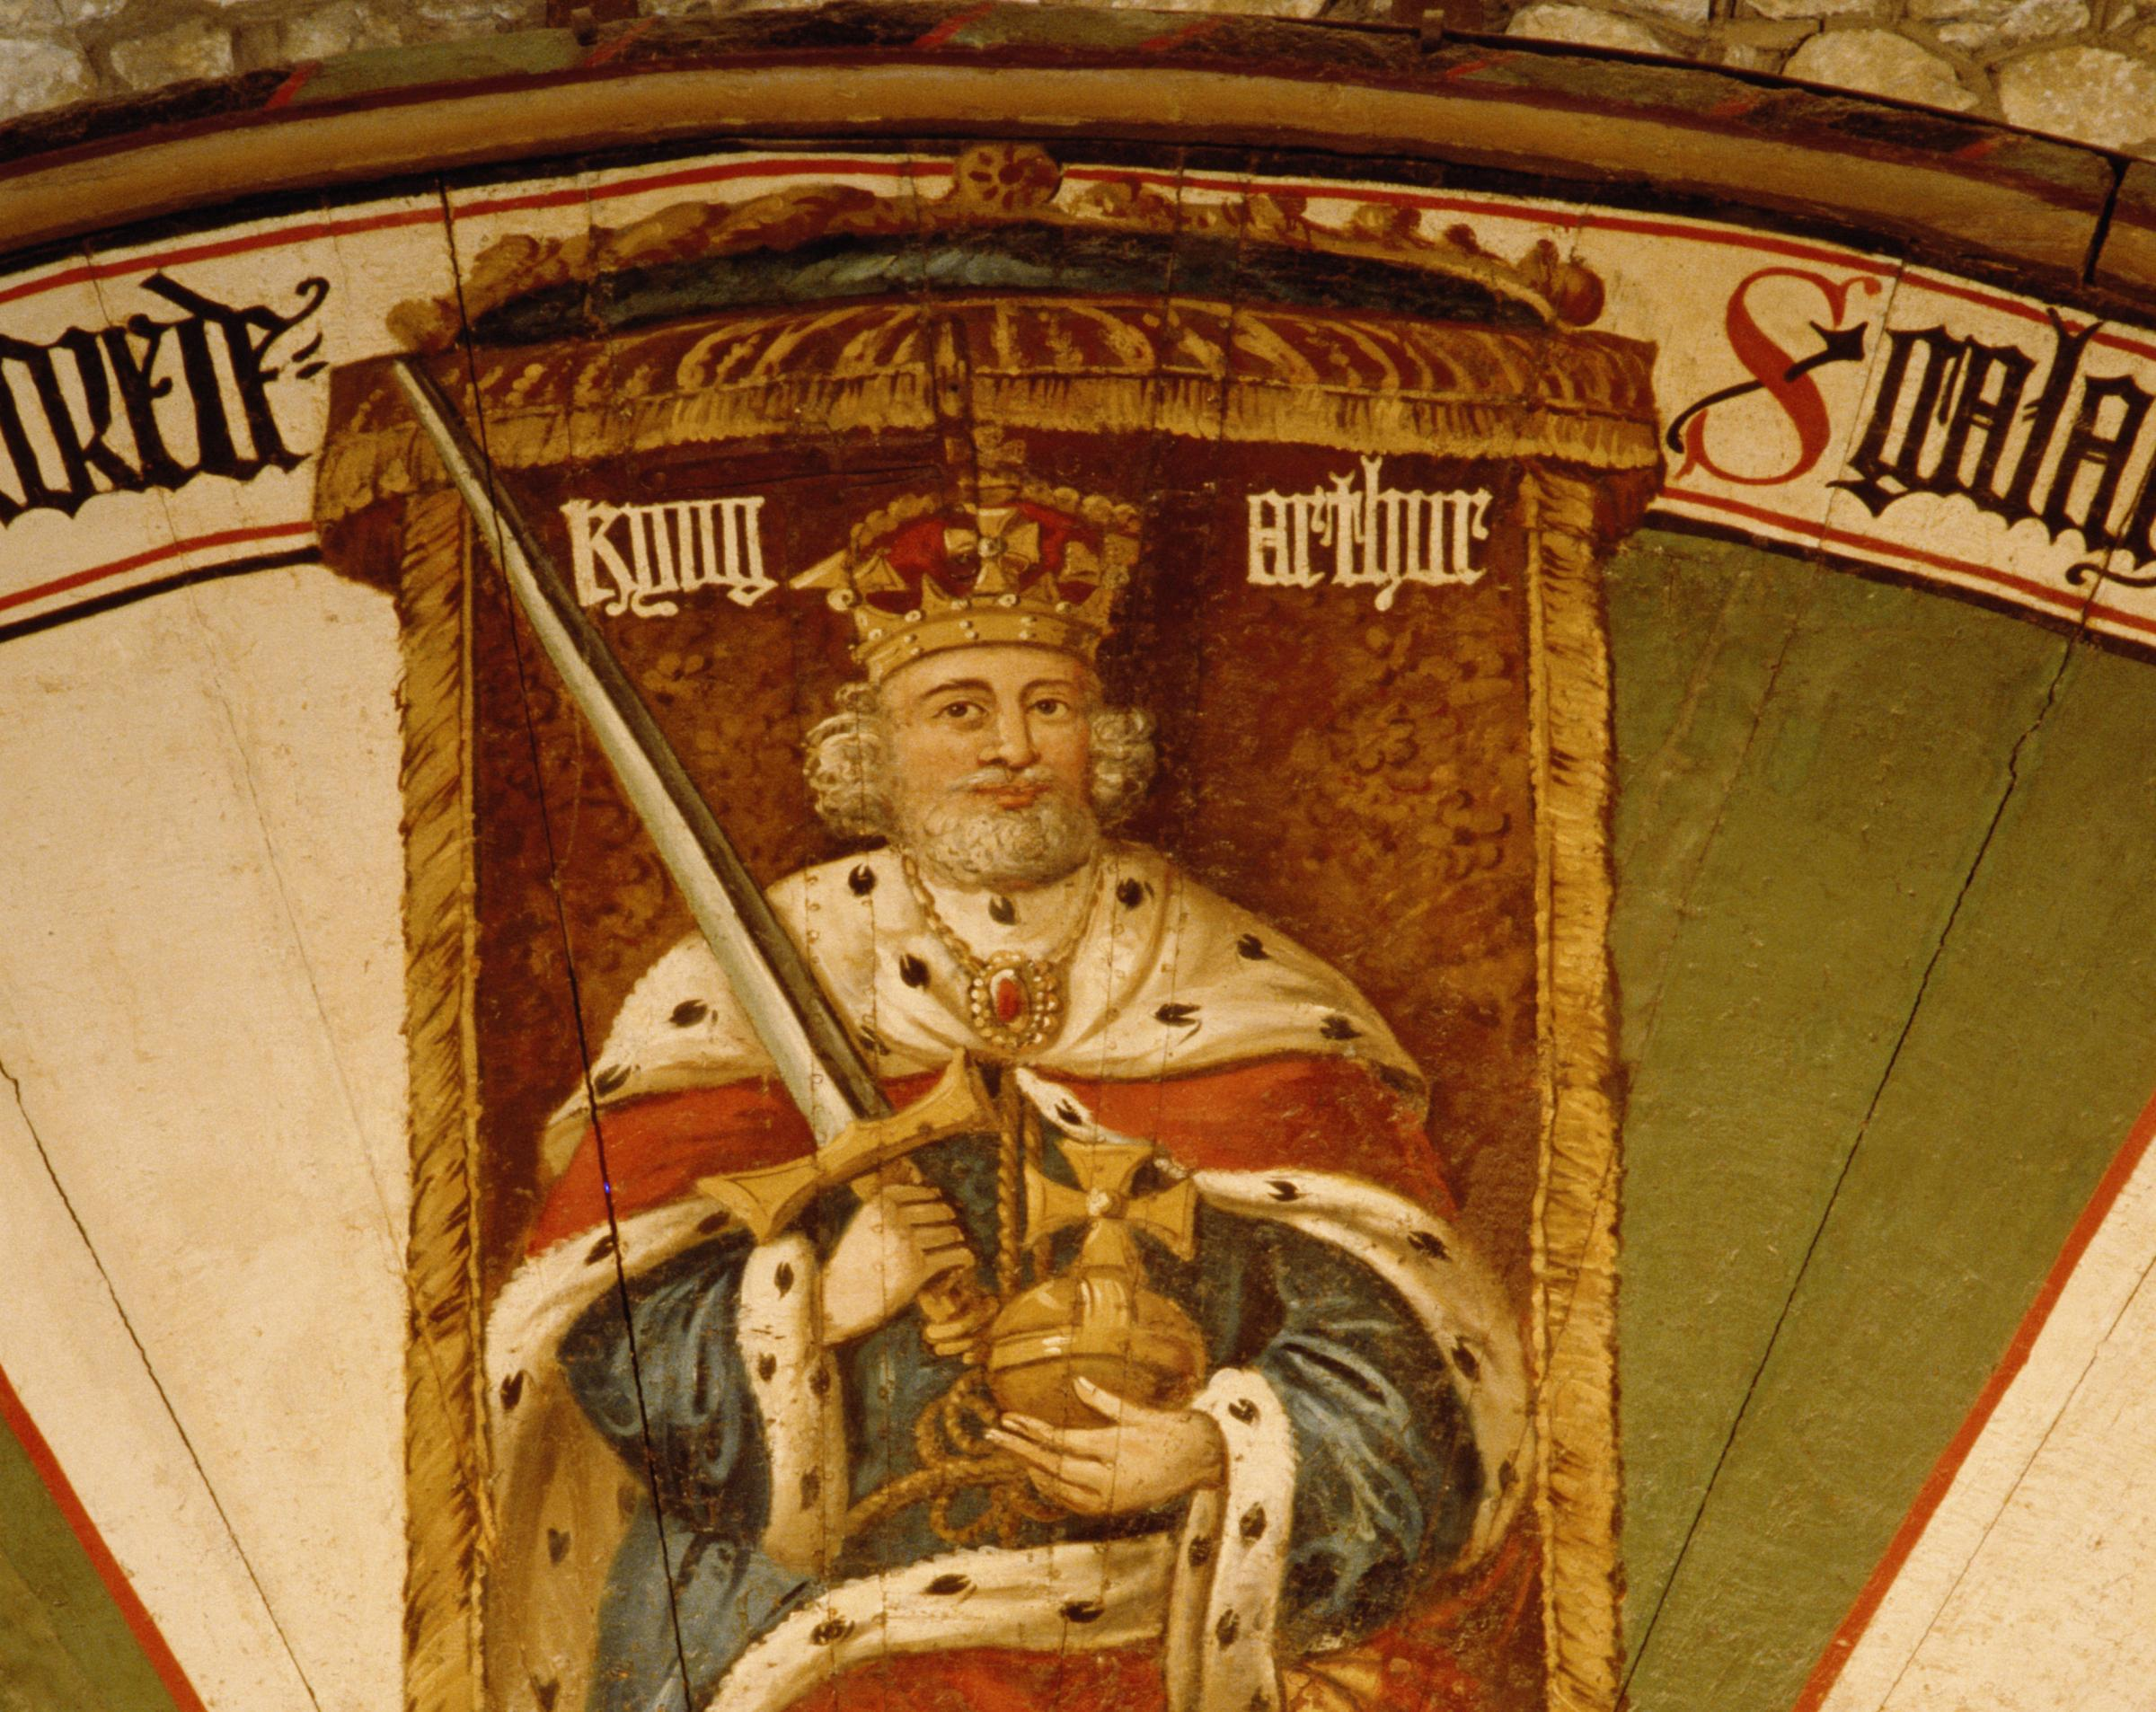 Writer claims £50k prize for 'proving' King Arthur's true identity